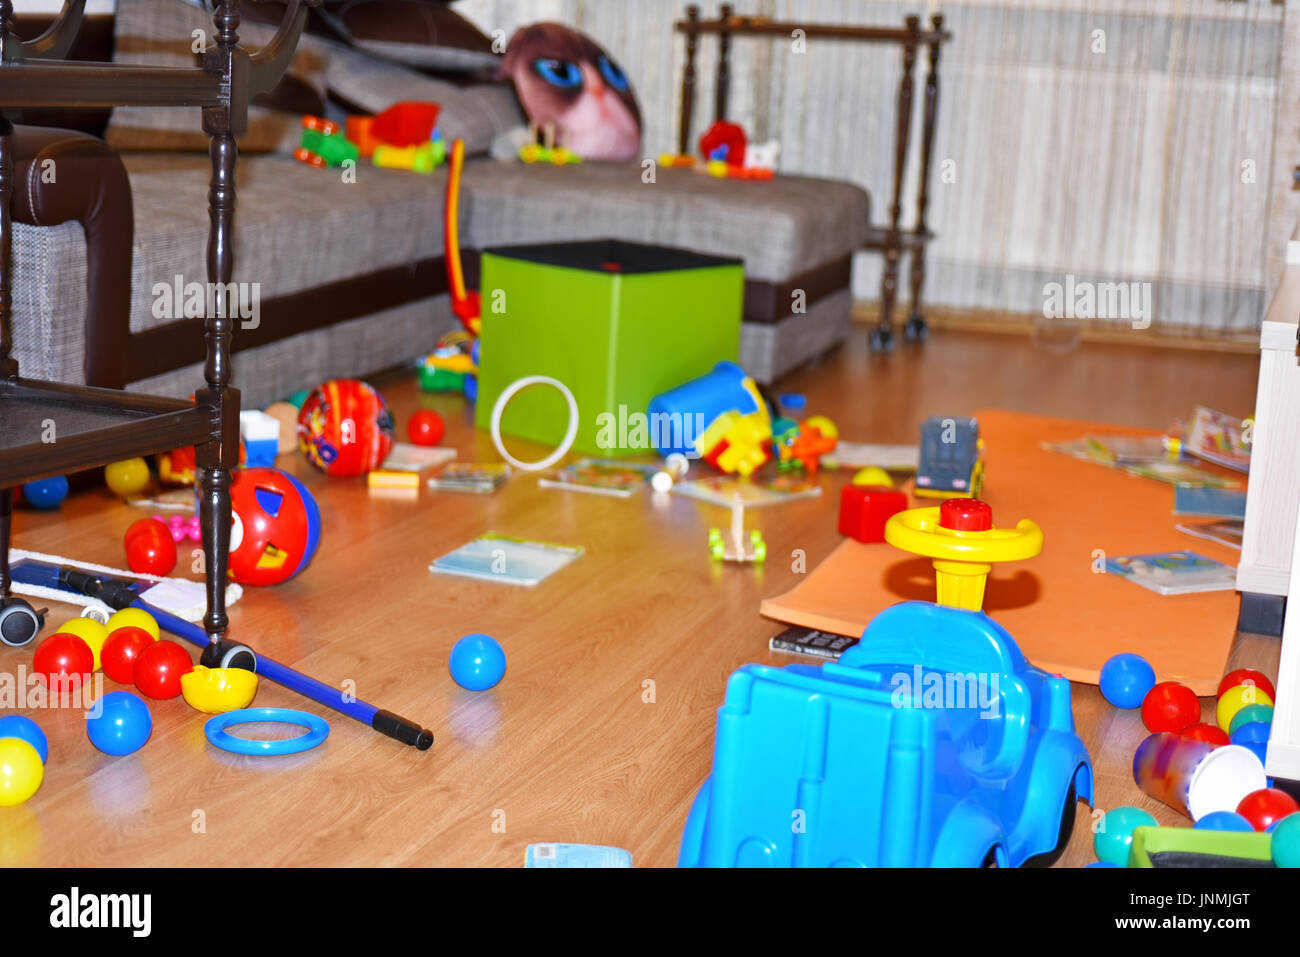 A mess in the children's room. - Stock Image